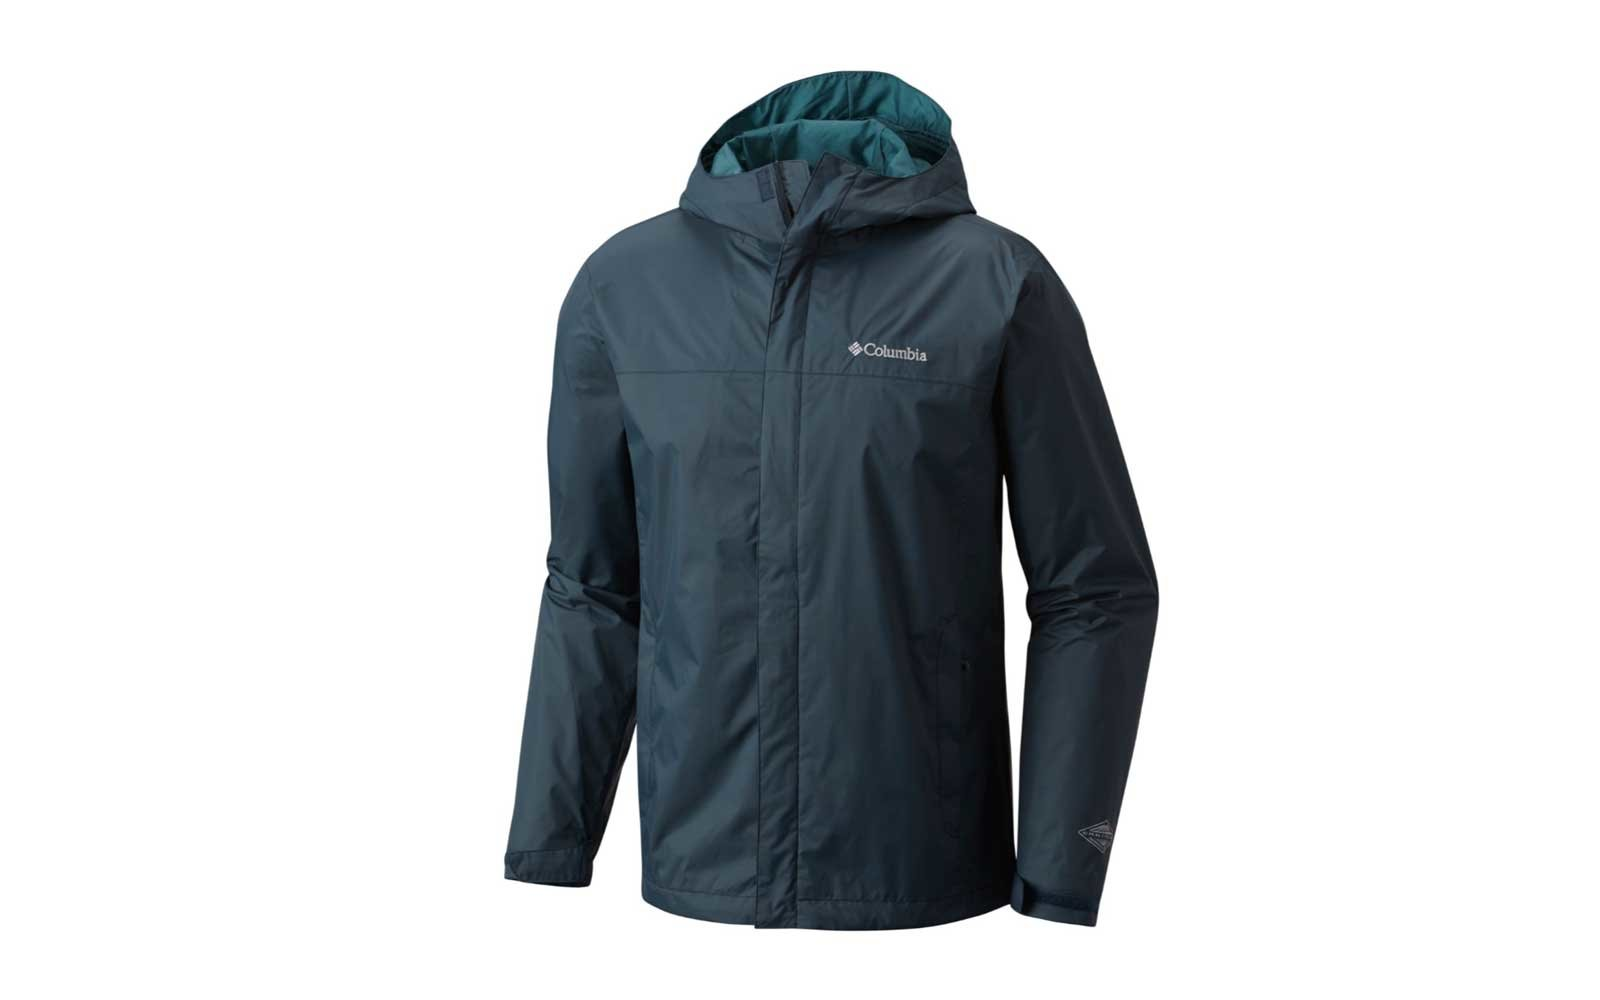 The Best Packable Rain Jackets for Men and Women | Travel +